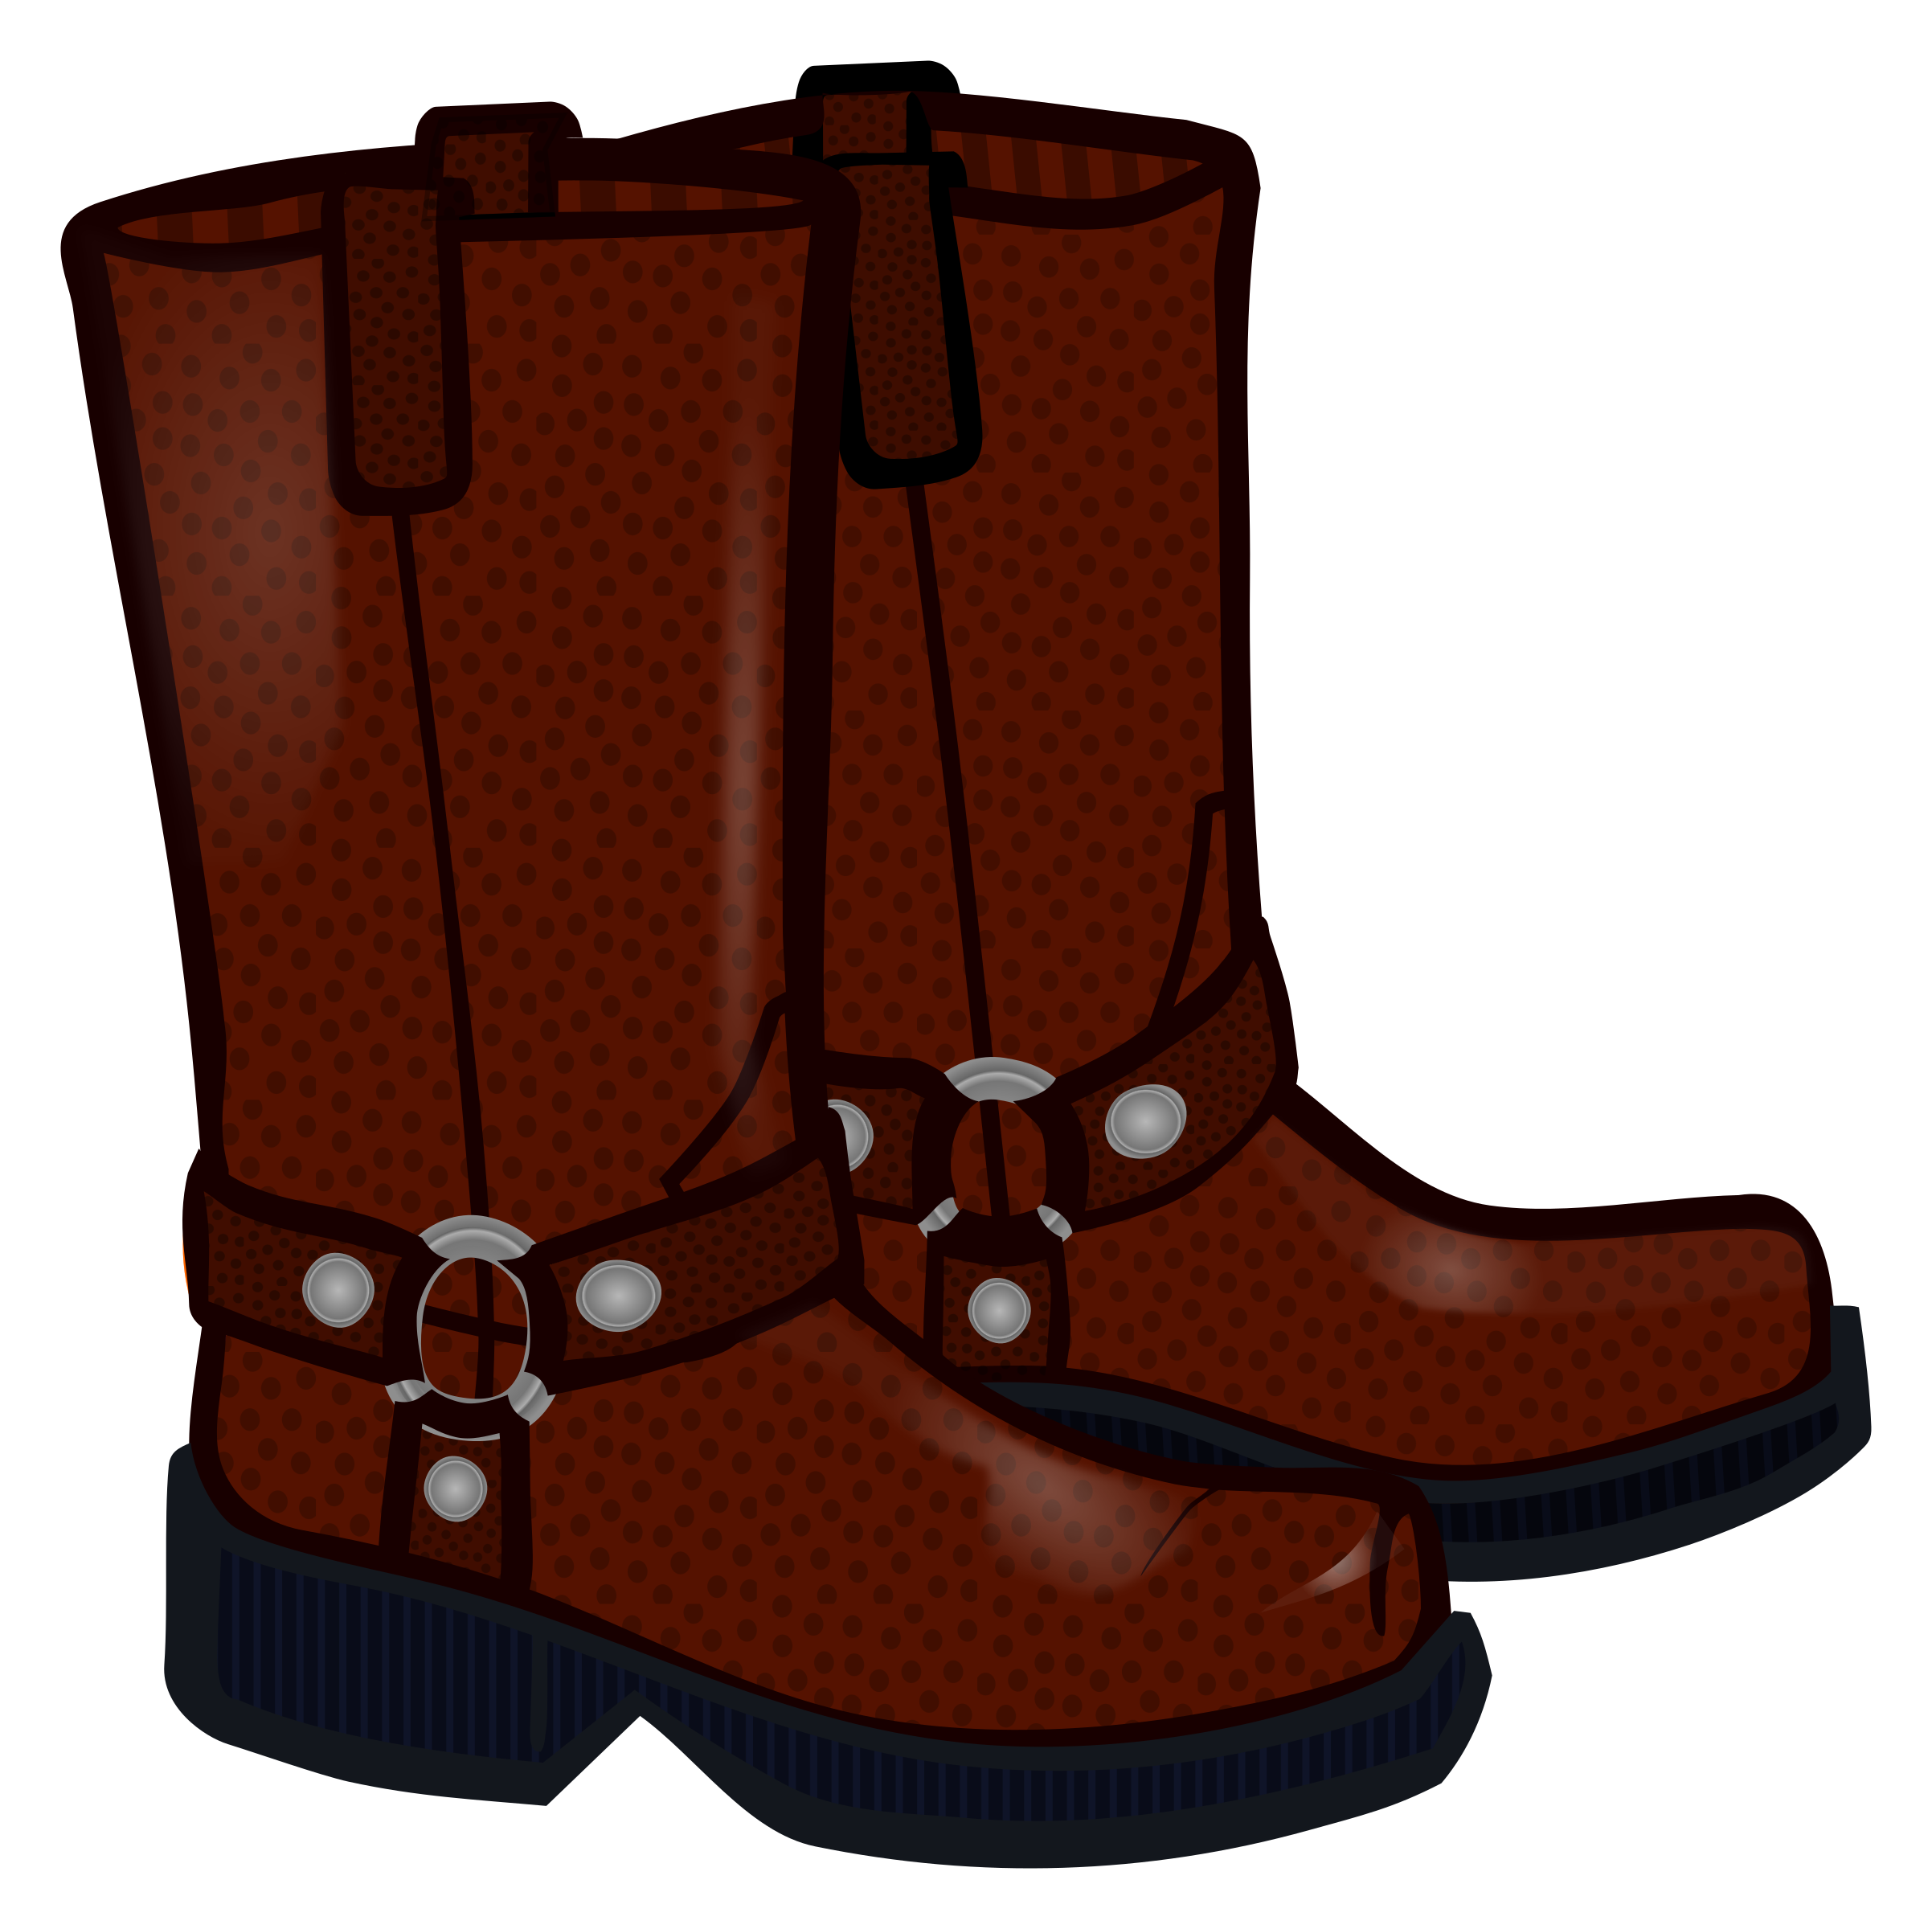 Boots clipart. Coloured big image png